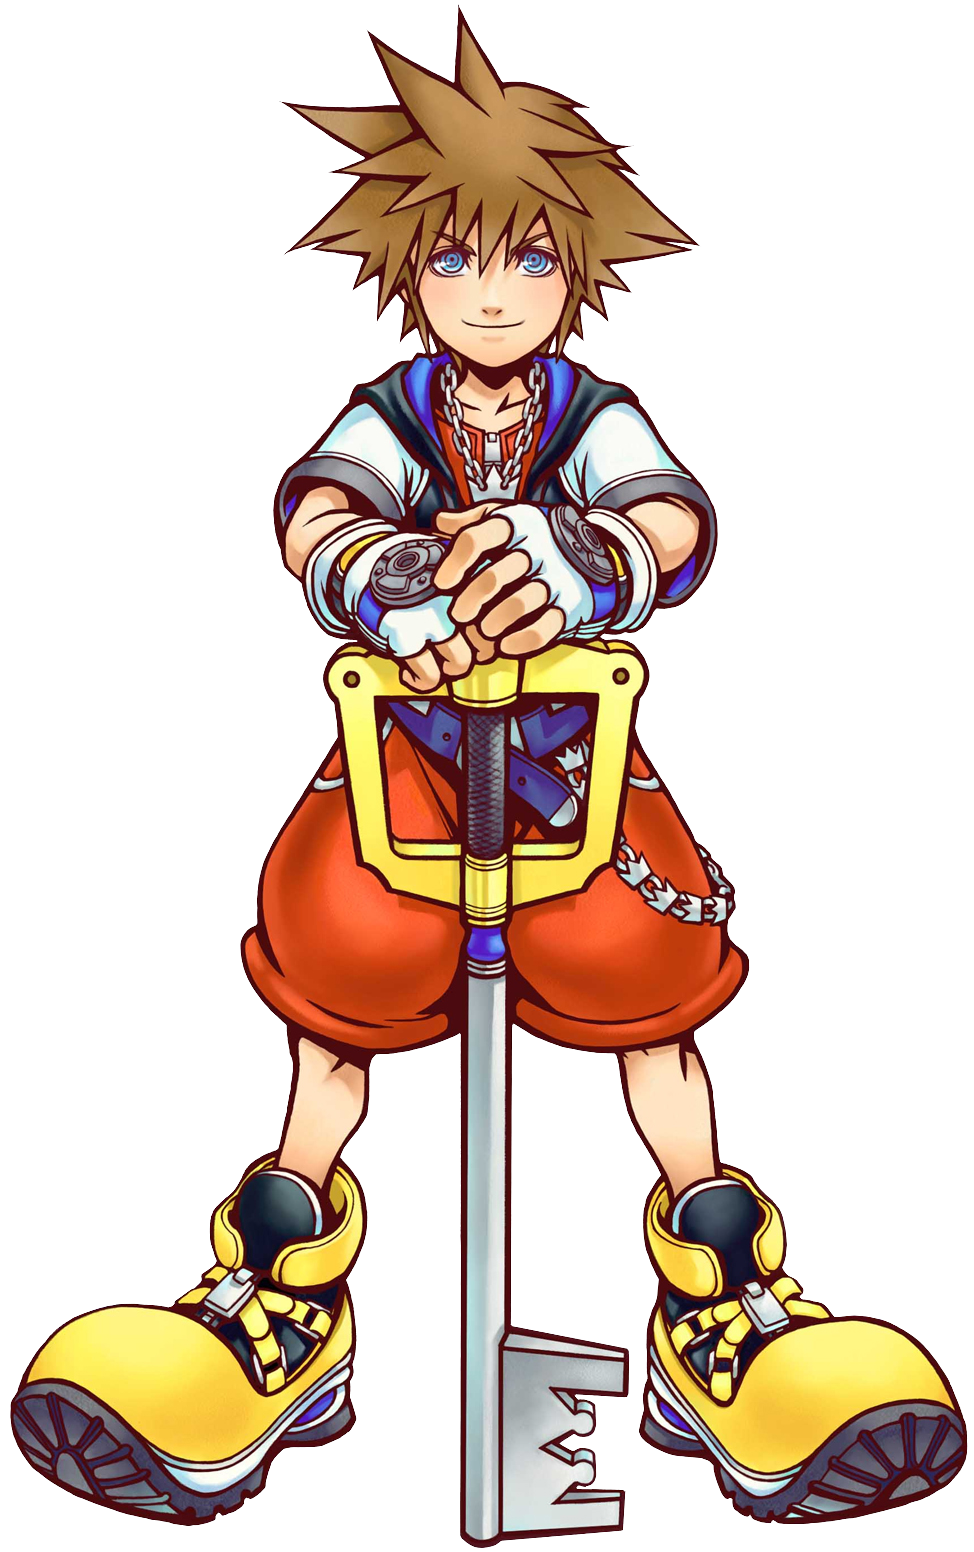 Kingdom Hearts Hd PNG Image